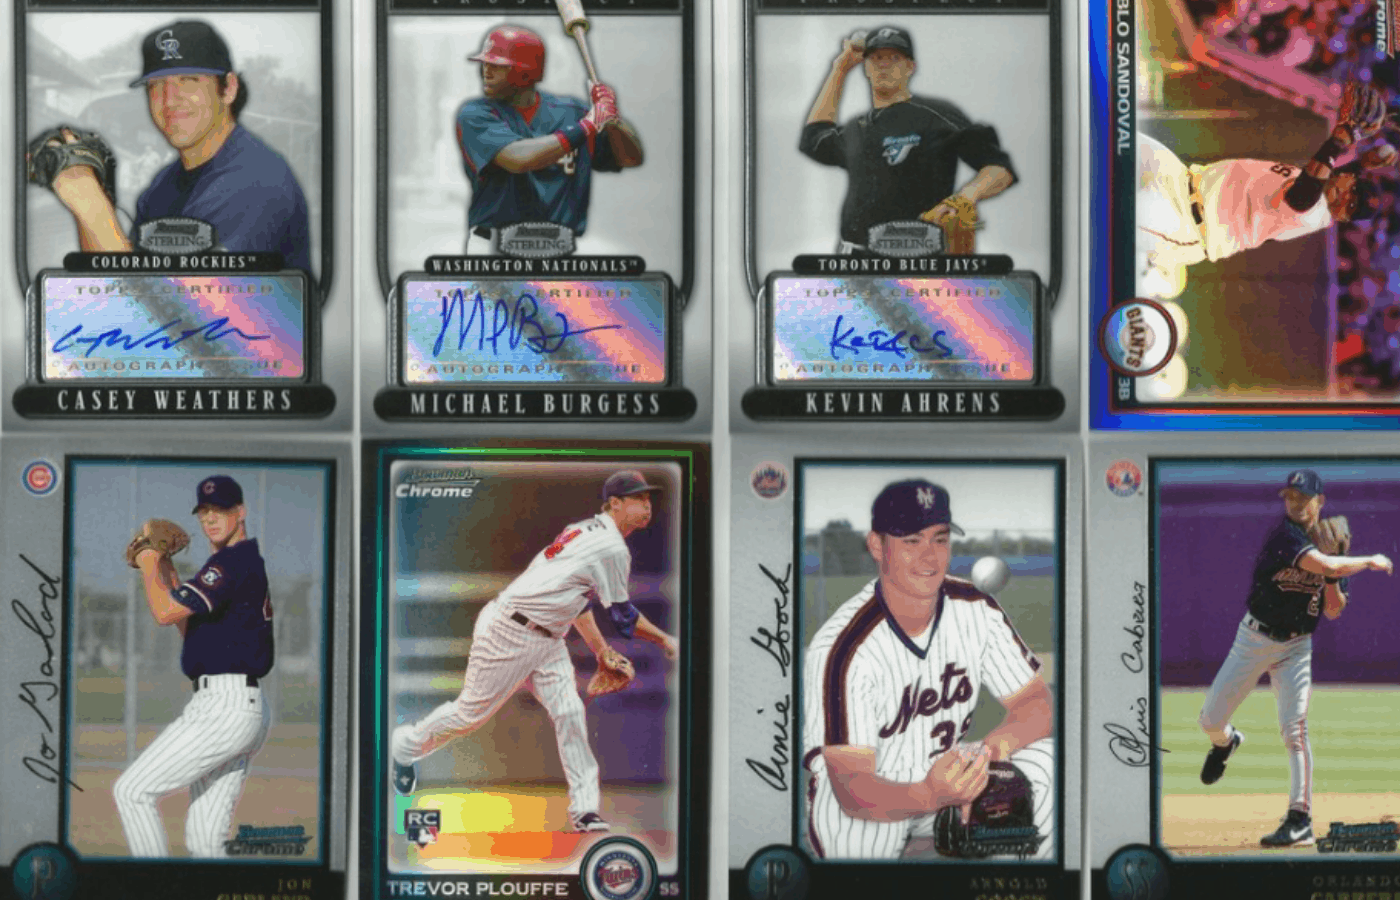 how do you get scratches out of chome baseball cards